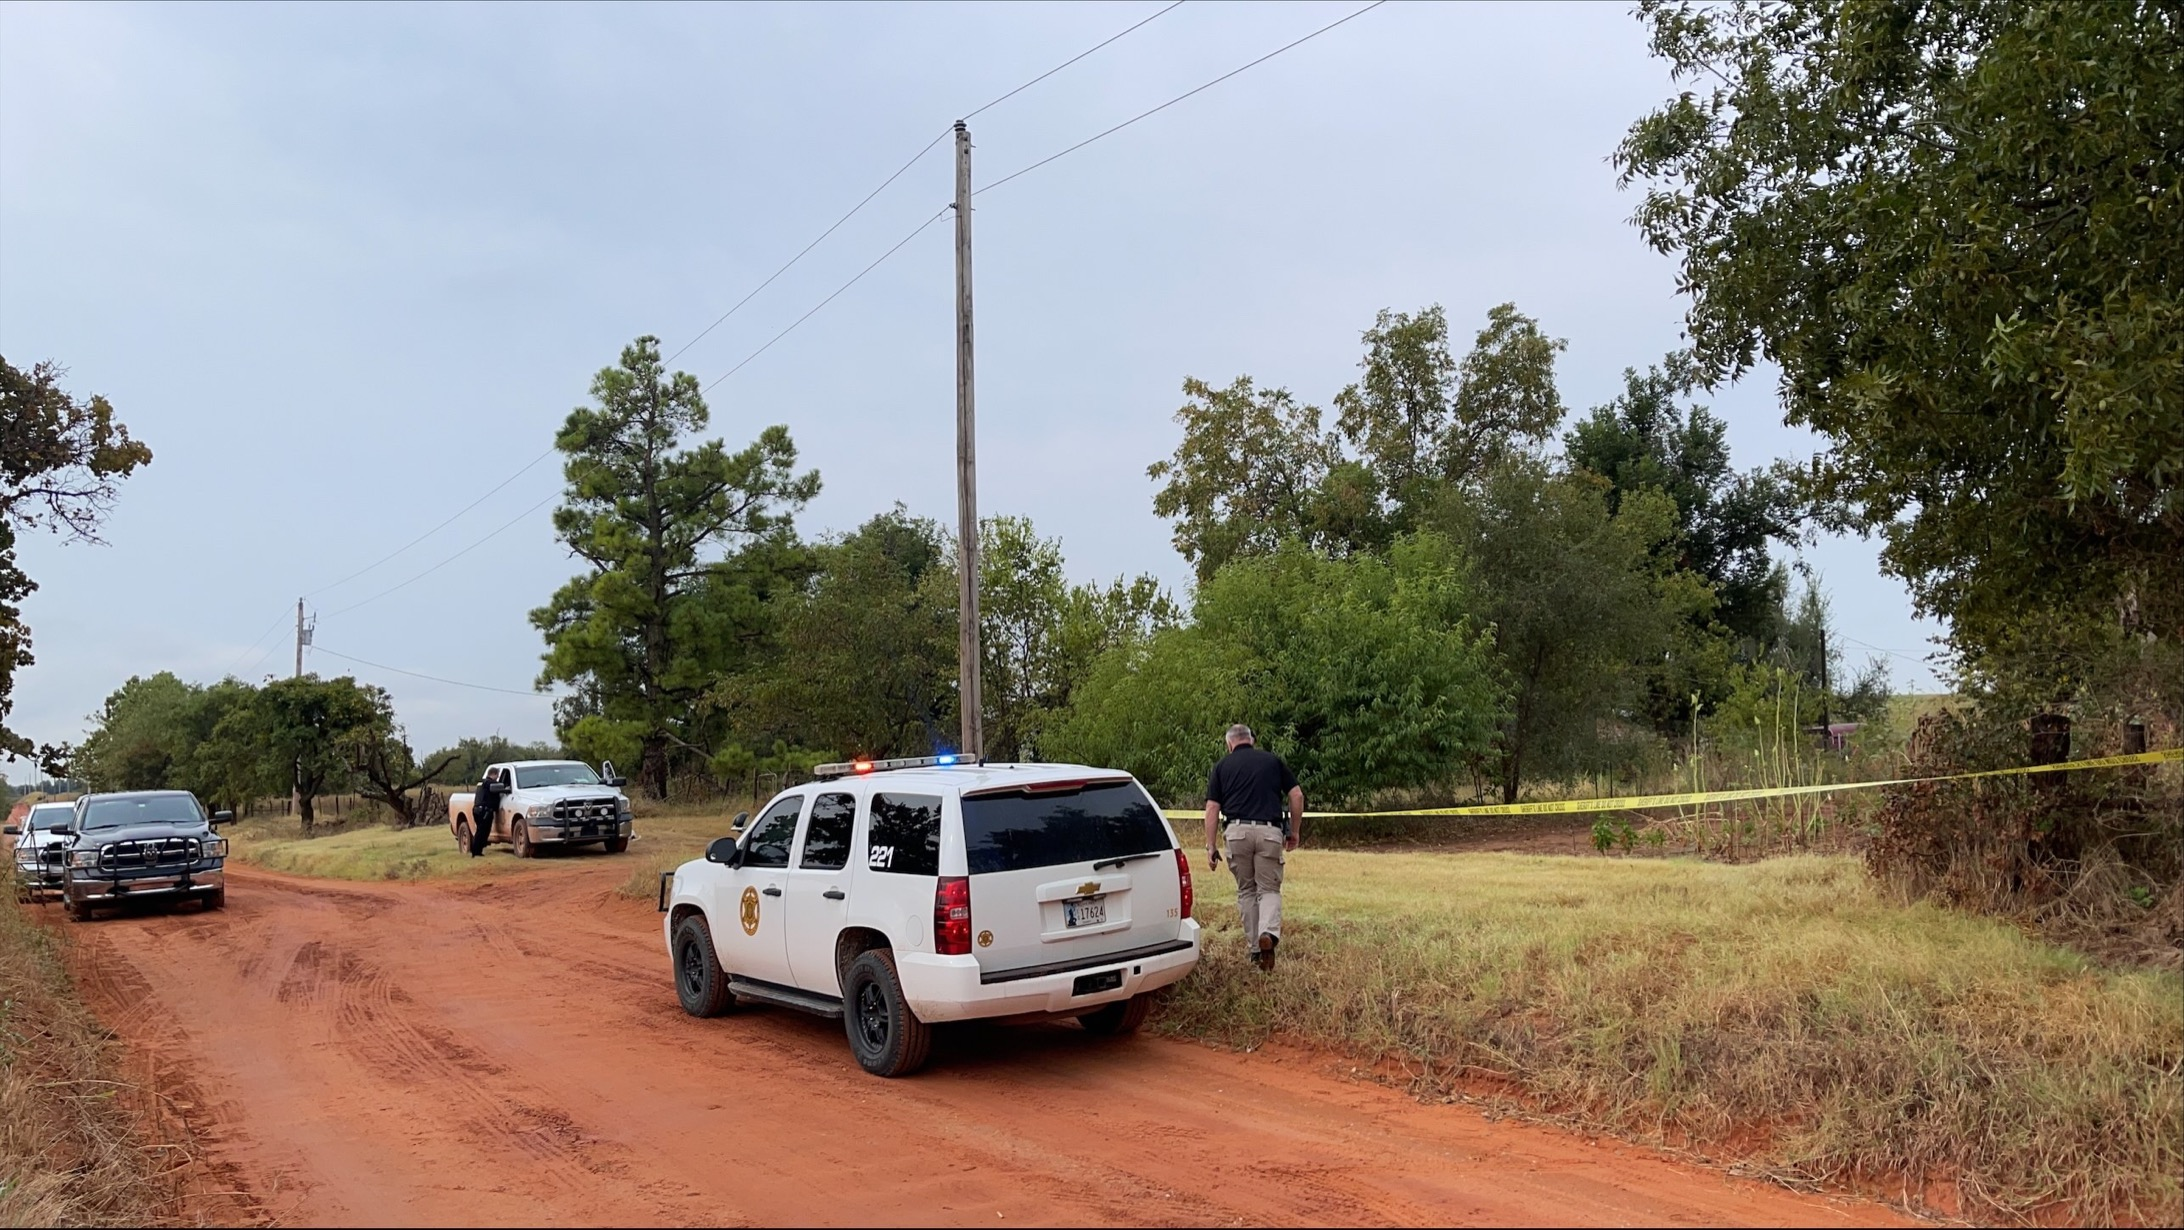 Agents at scene of deadly home invasion